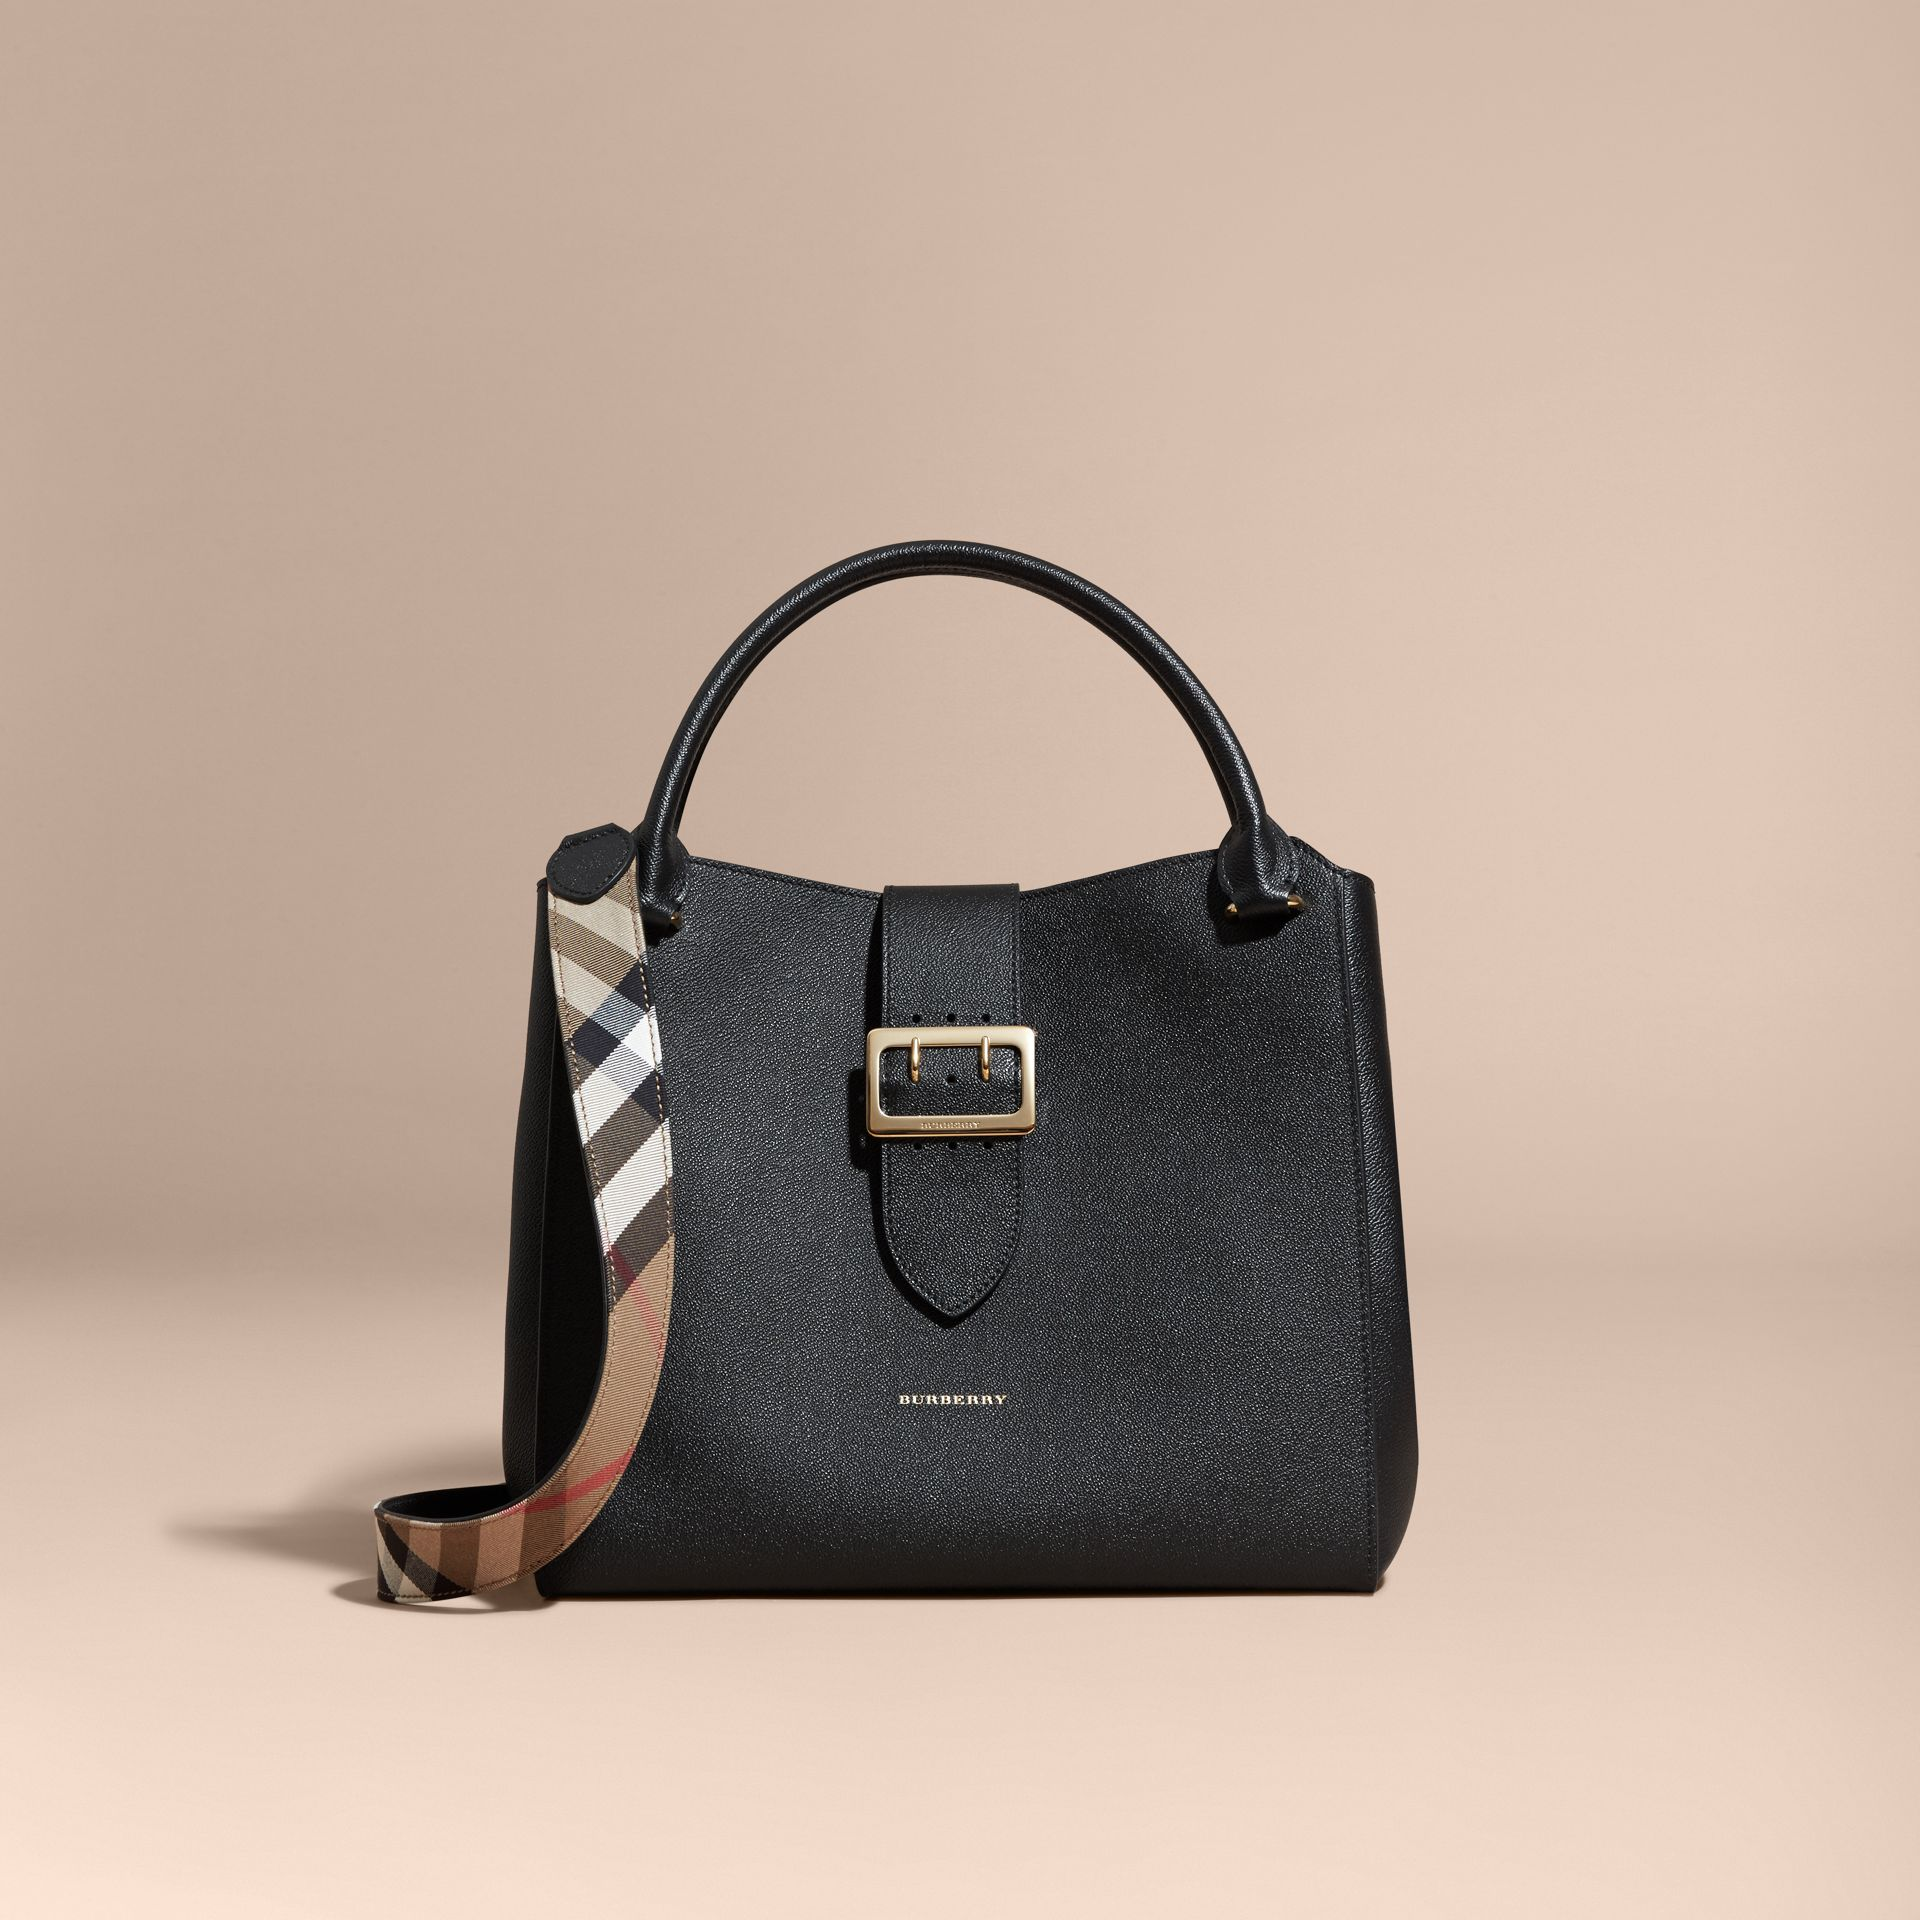 Borsa tote The Buckle grande in pelle a grana (Nero) - Donna | Burberry - immagine della galleria 9